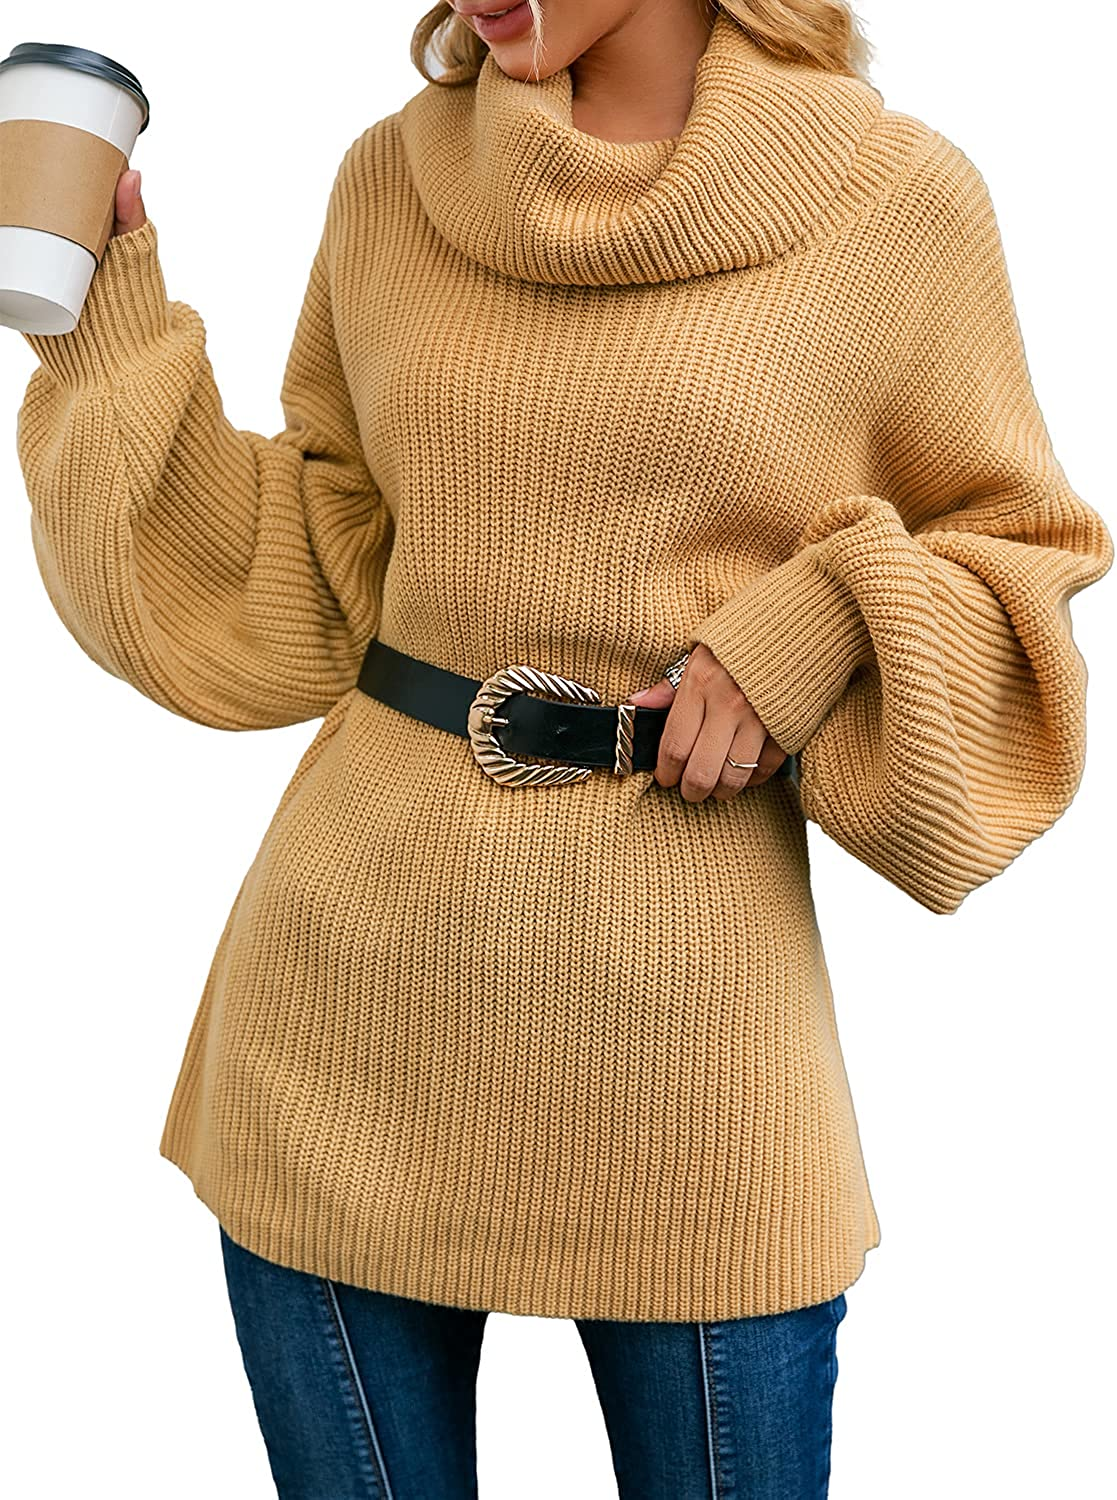 Simplee Women's Oversized Cowl Neck Lantern Long Sleeve Knit Pullover Sweater